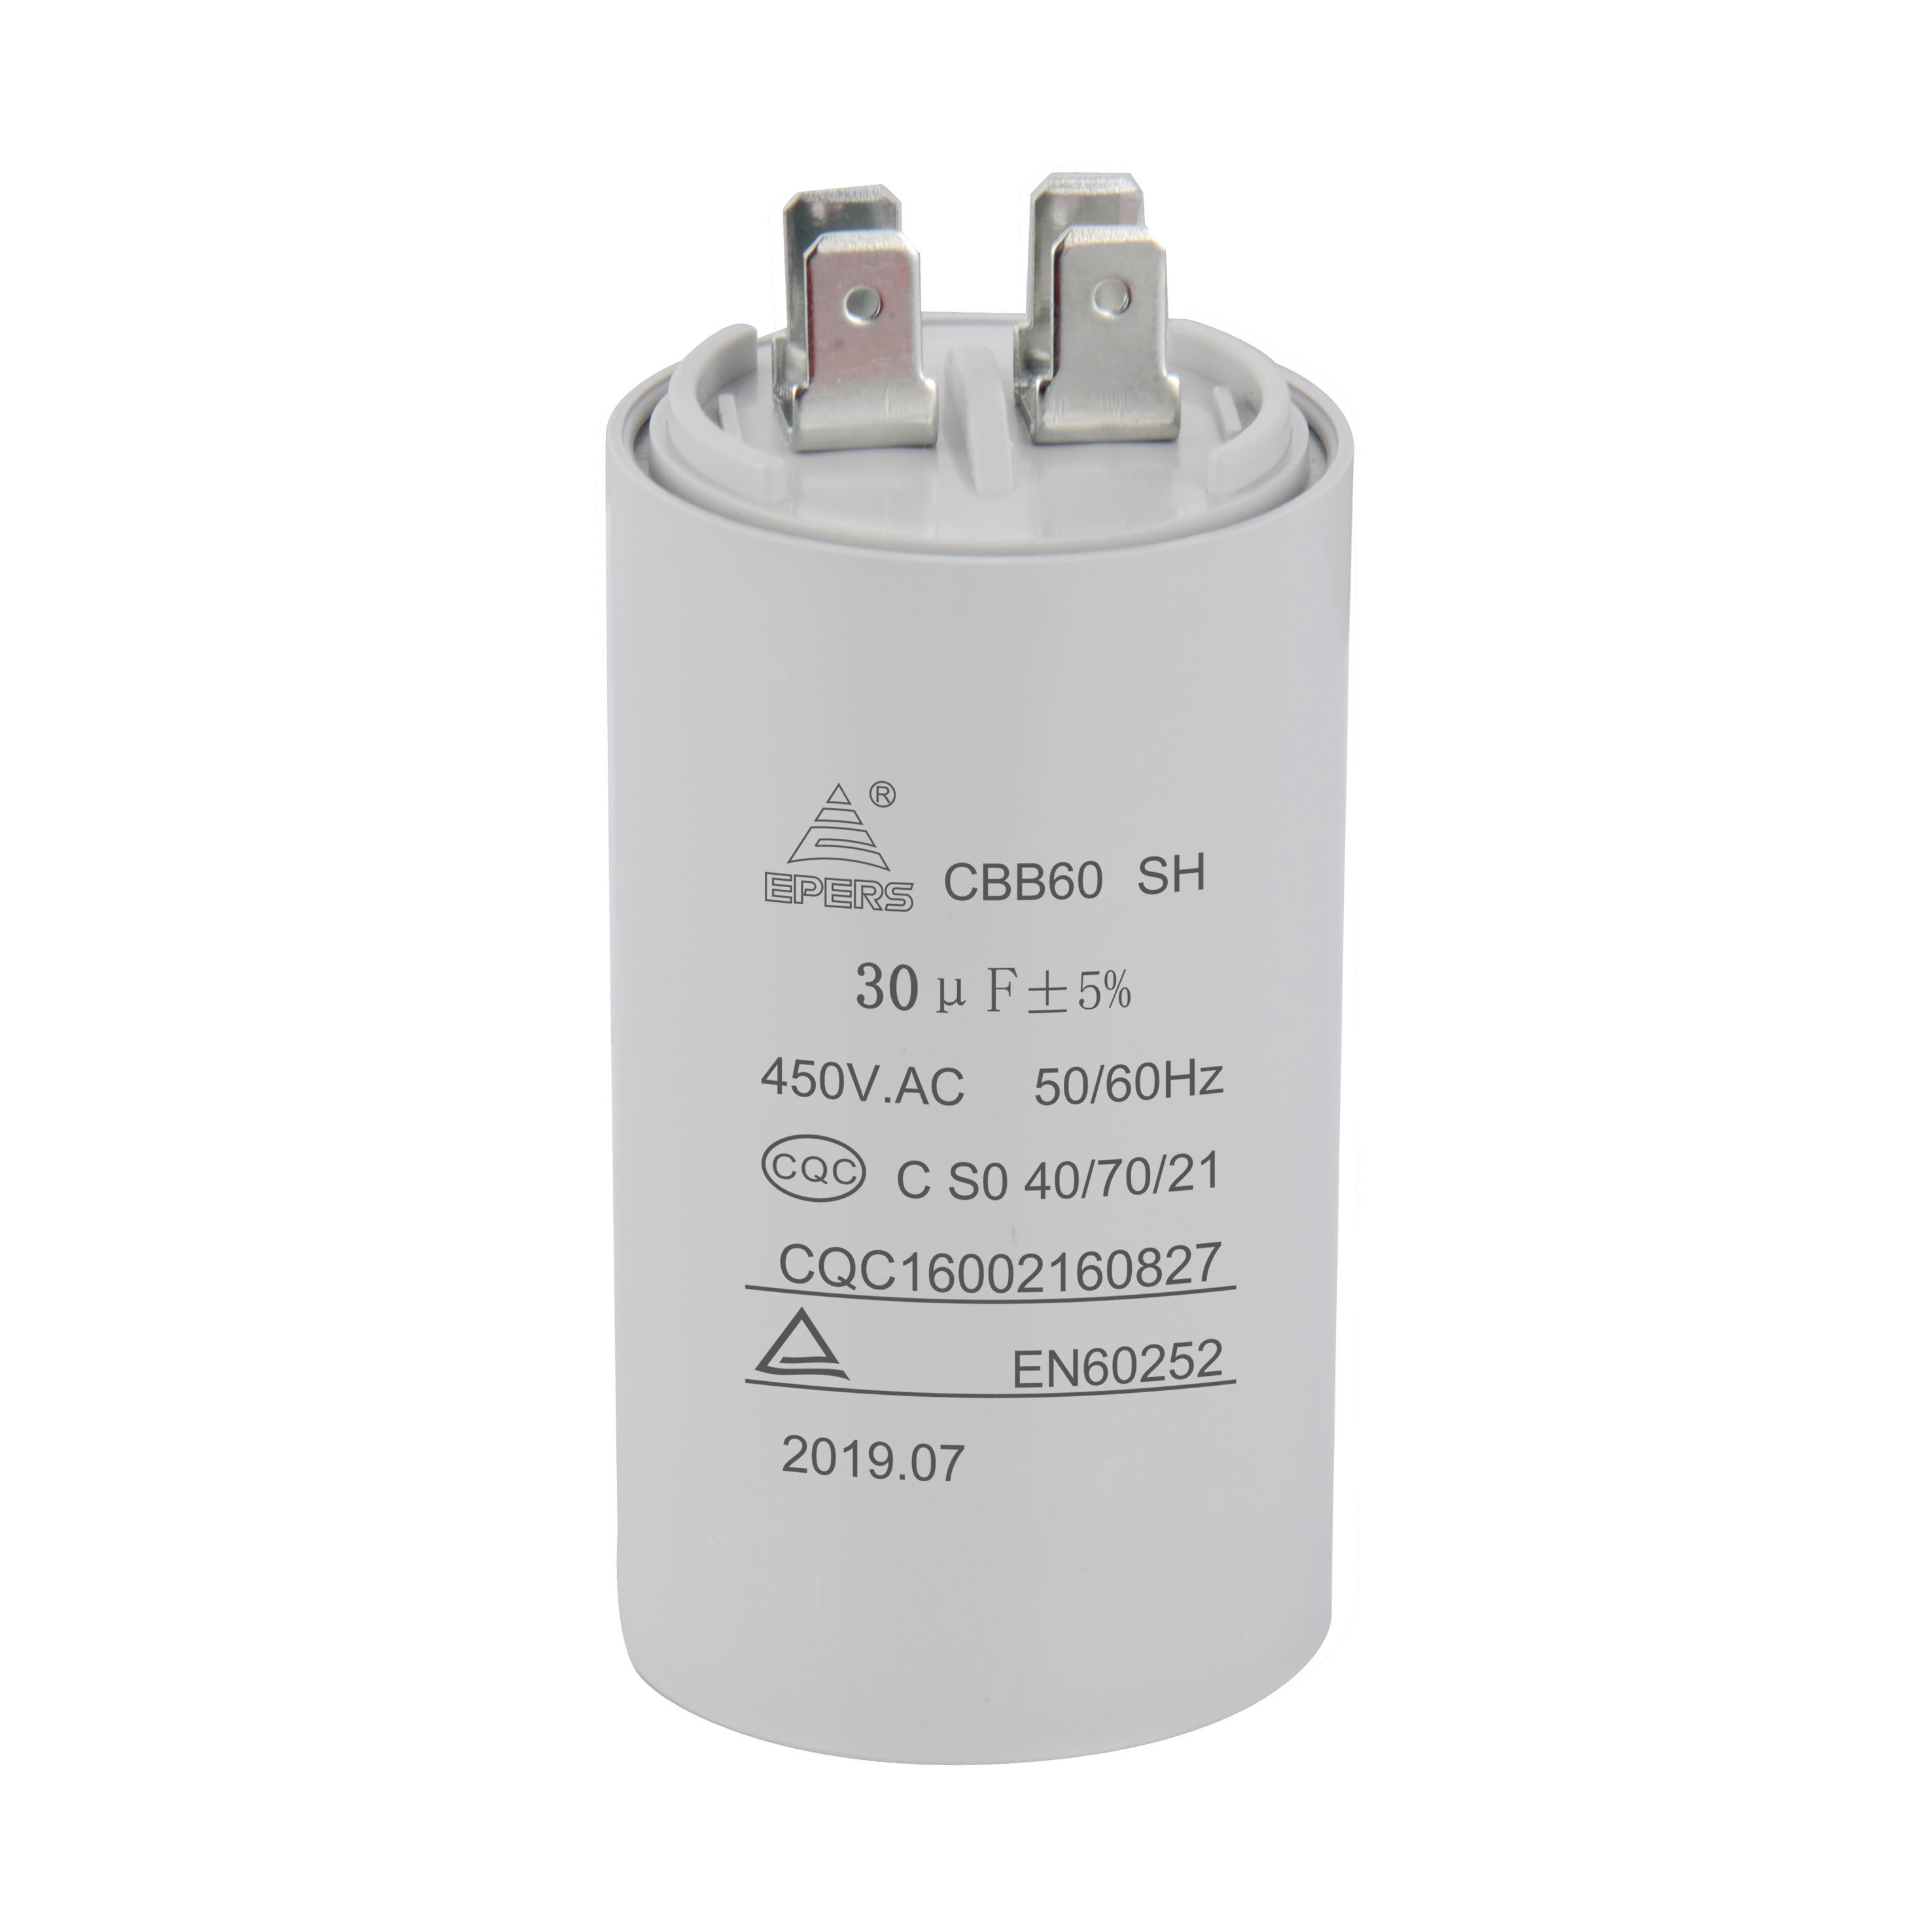 China 70 Capacitors China 70 Capacitors Manufacturers And Suppliers On Alibaba Com